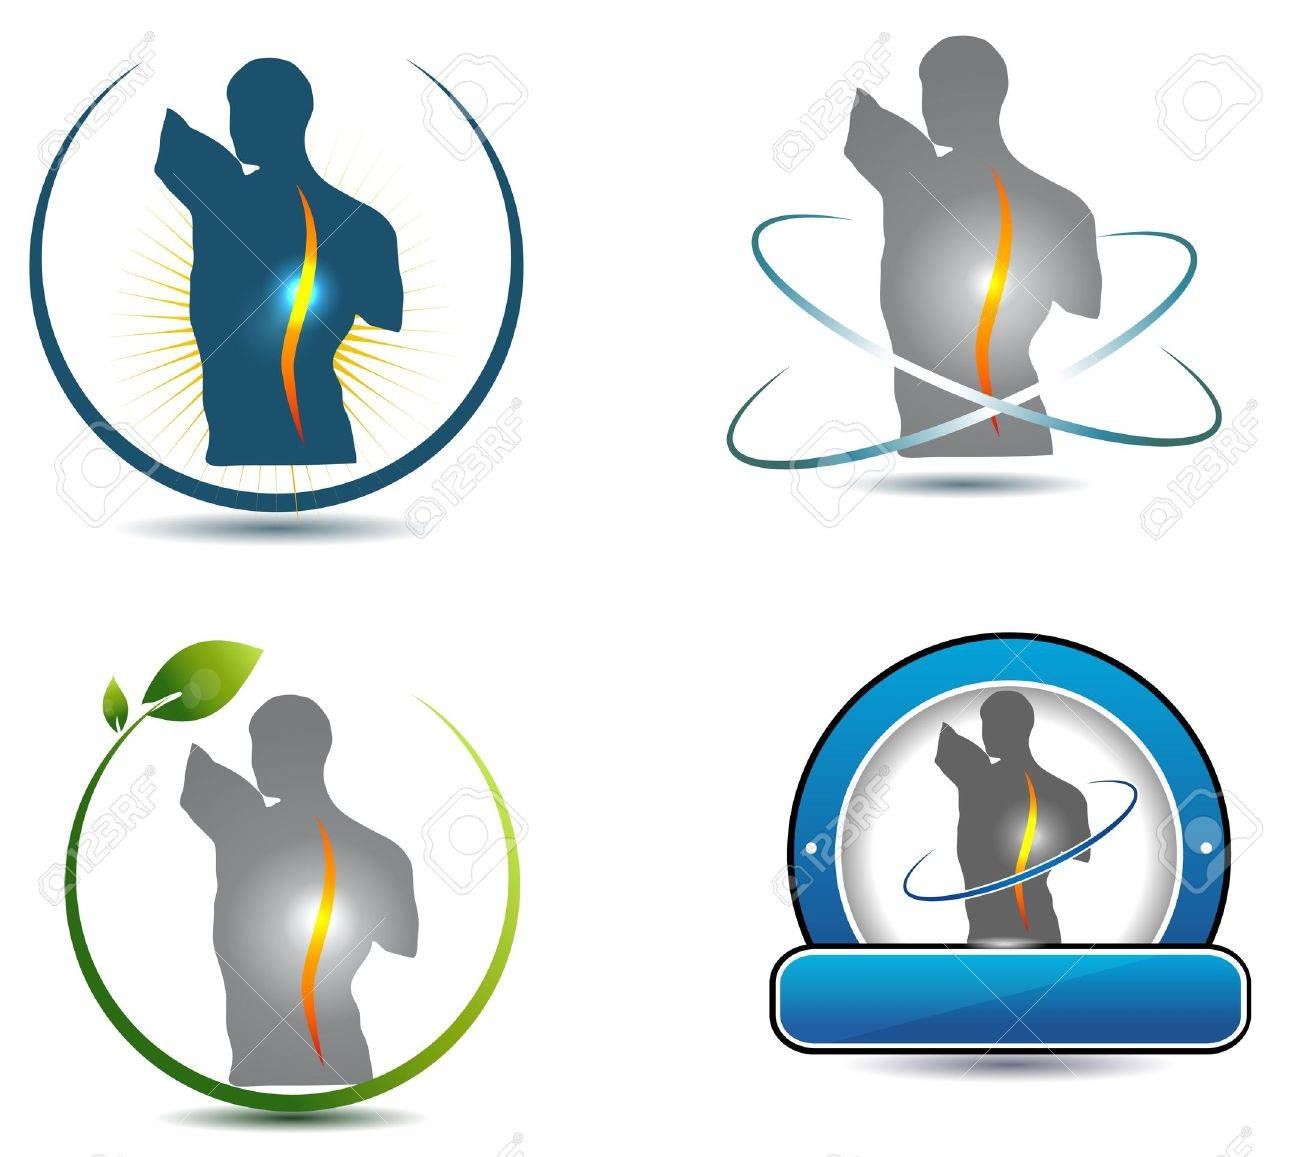 Healthy spine symbol Can be used in chiropractic, sports, massage...